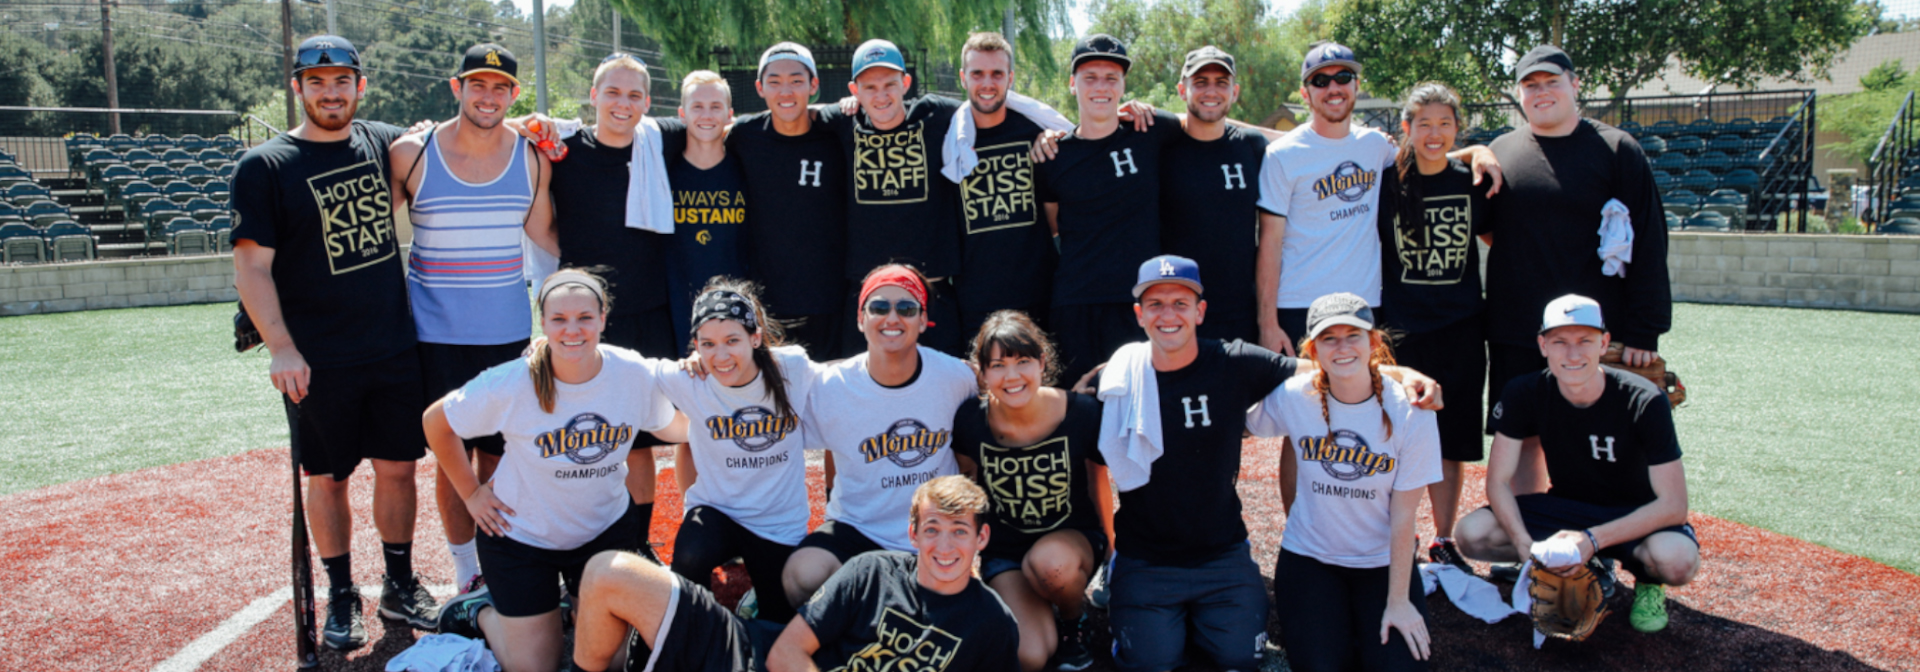 MARKETING_Events_Softball Champs_WEB.jpg